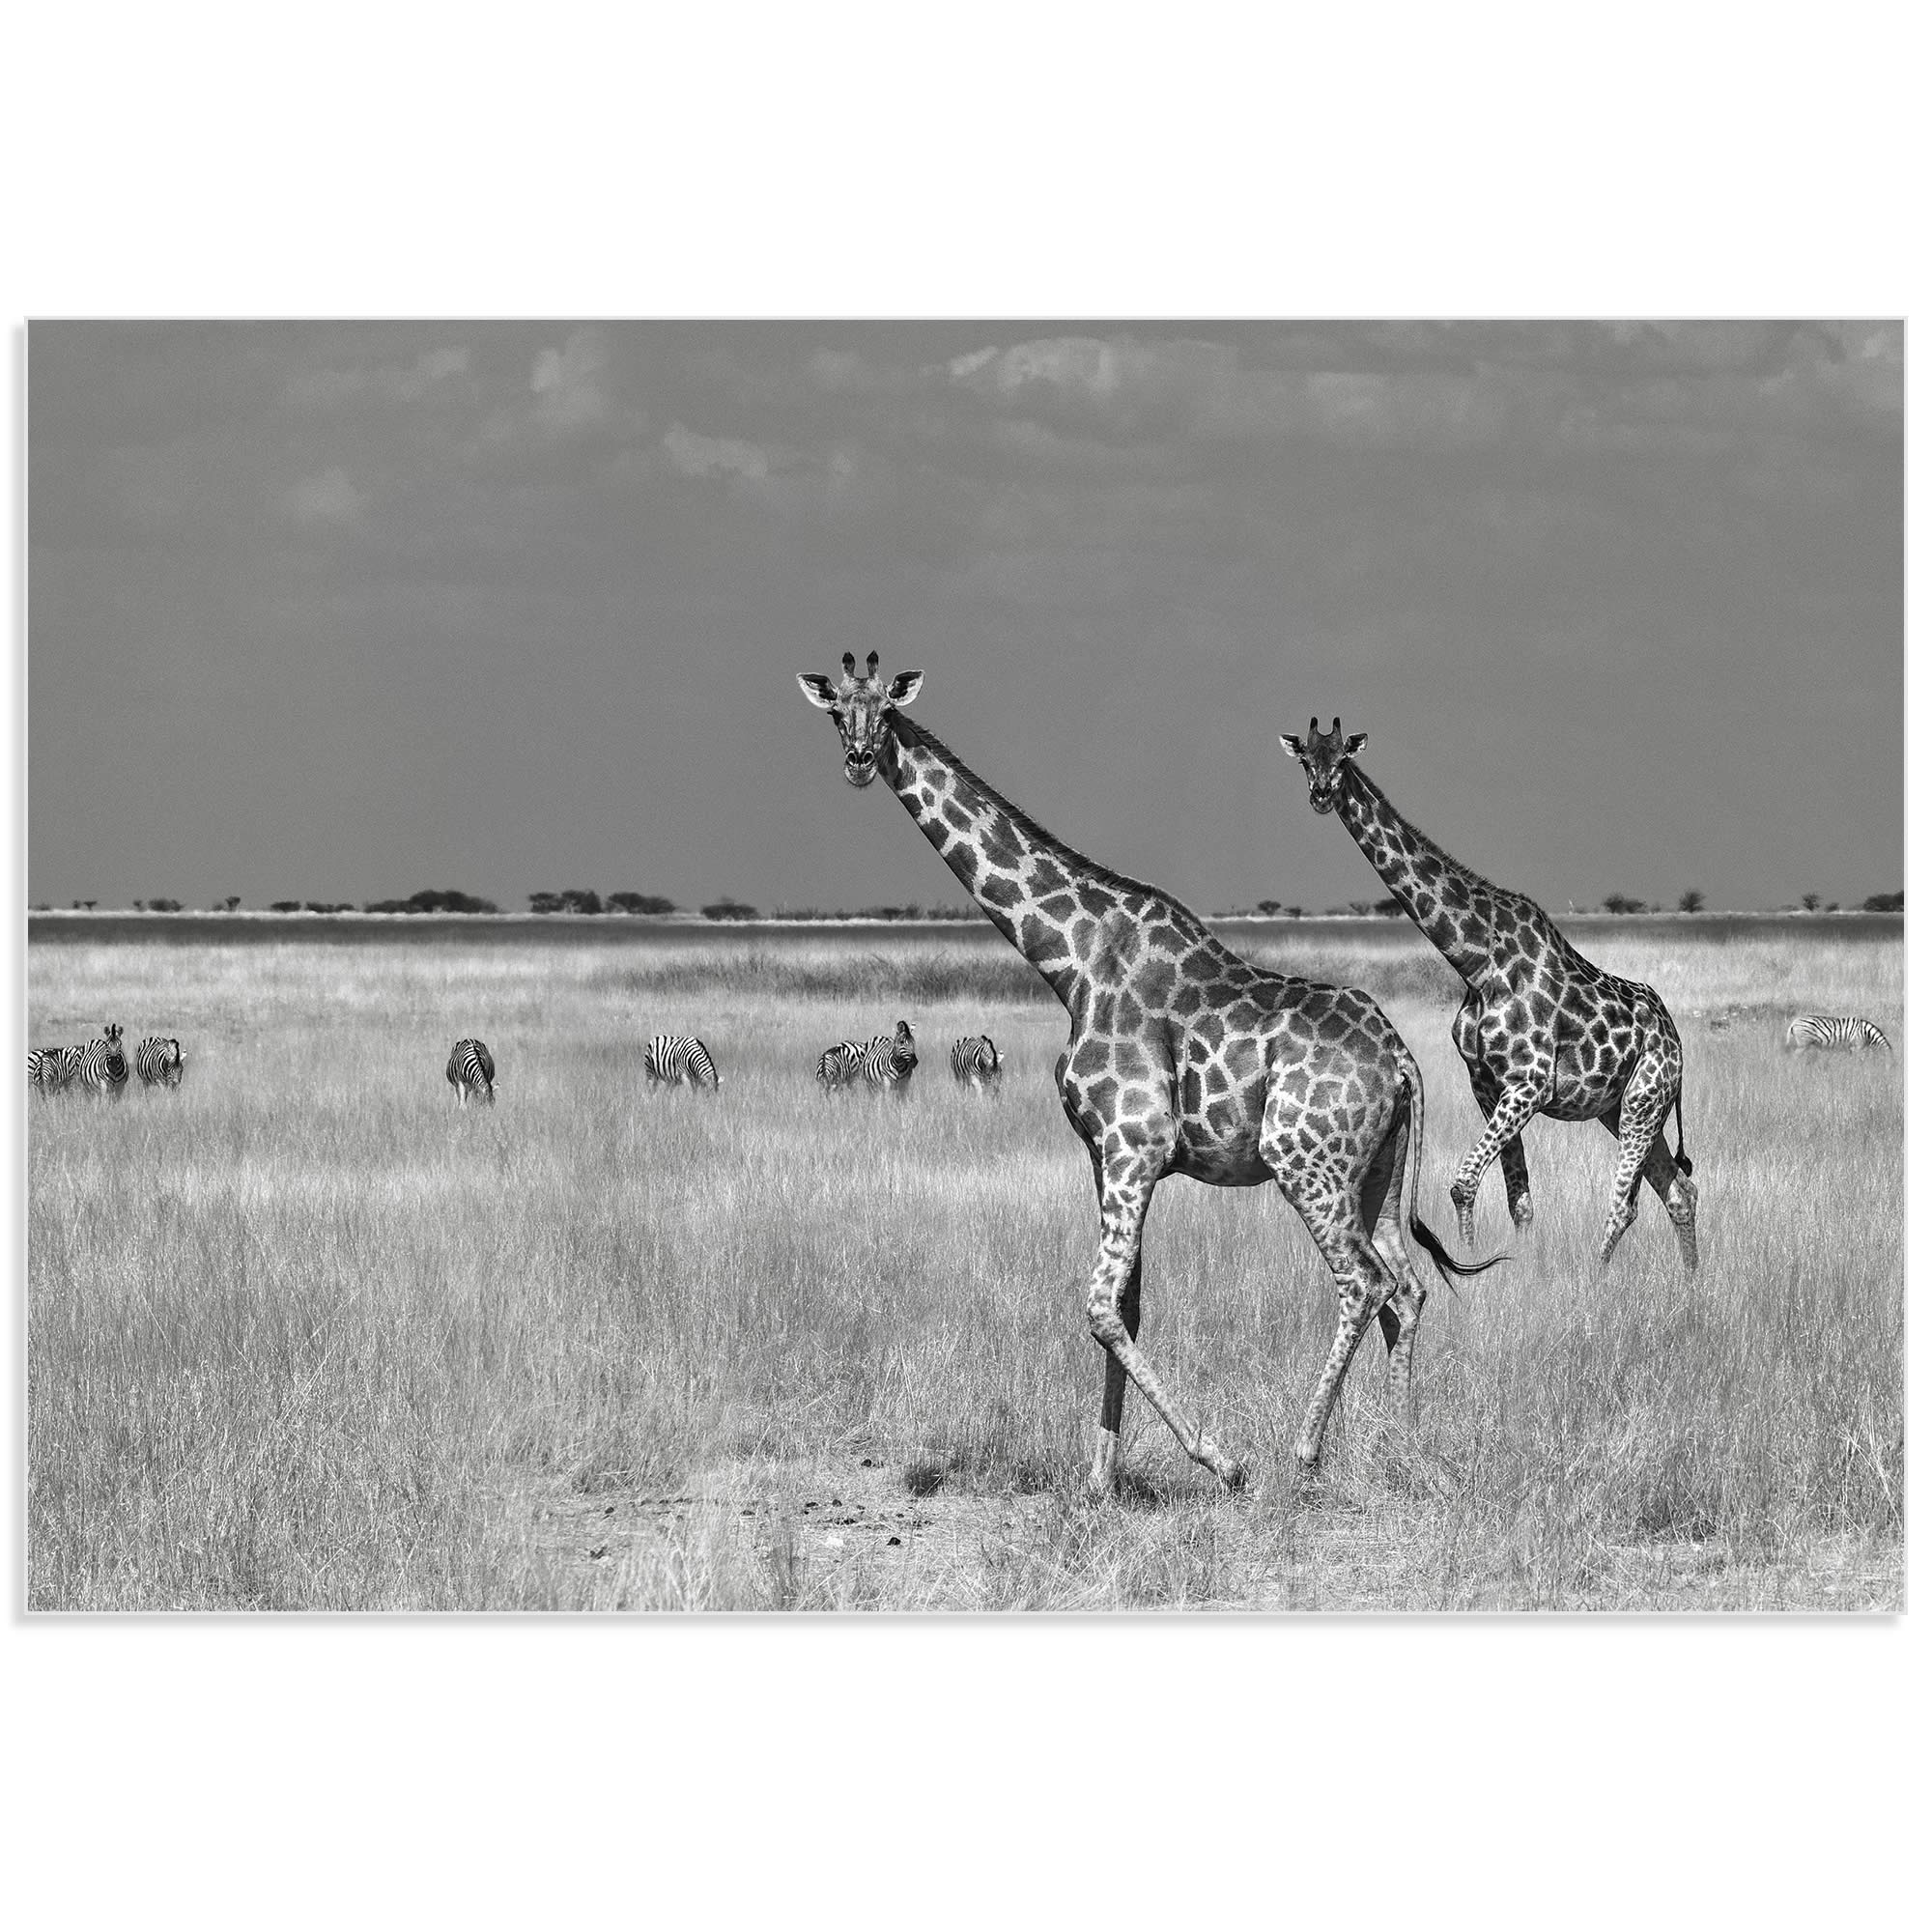 Savanna Favorites by Mathilde Guillemot - Giraffe and Zebra Art on Metal or Acrylic - Alternate View 2